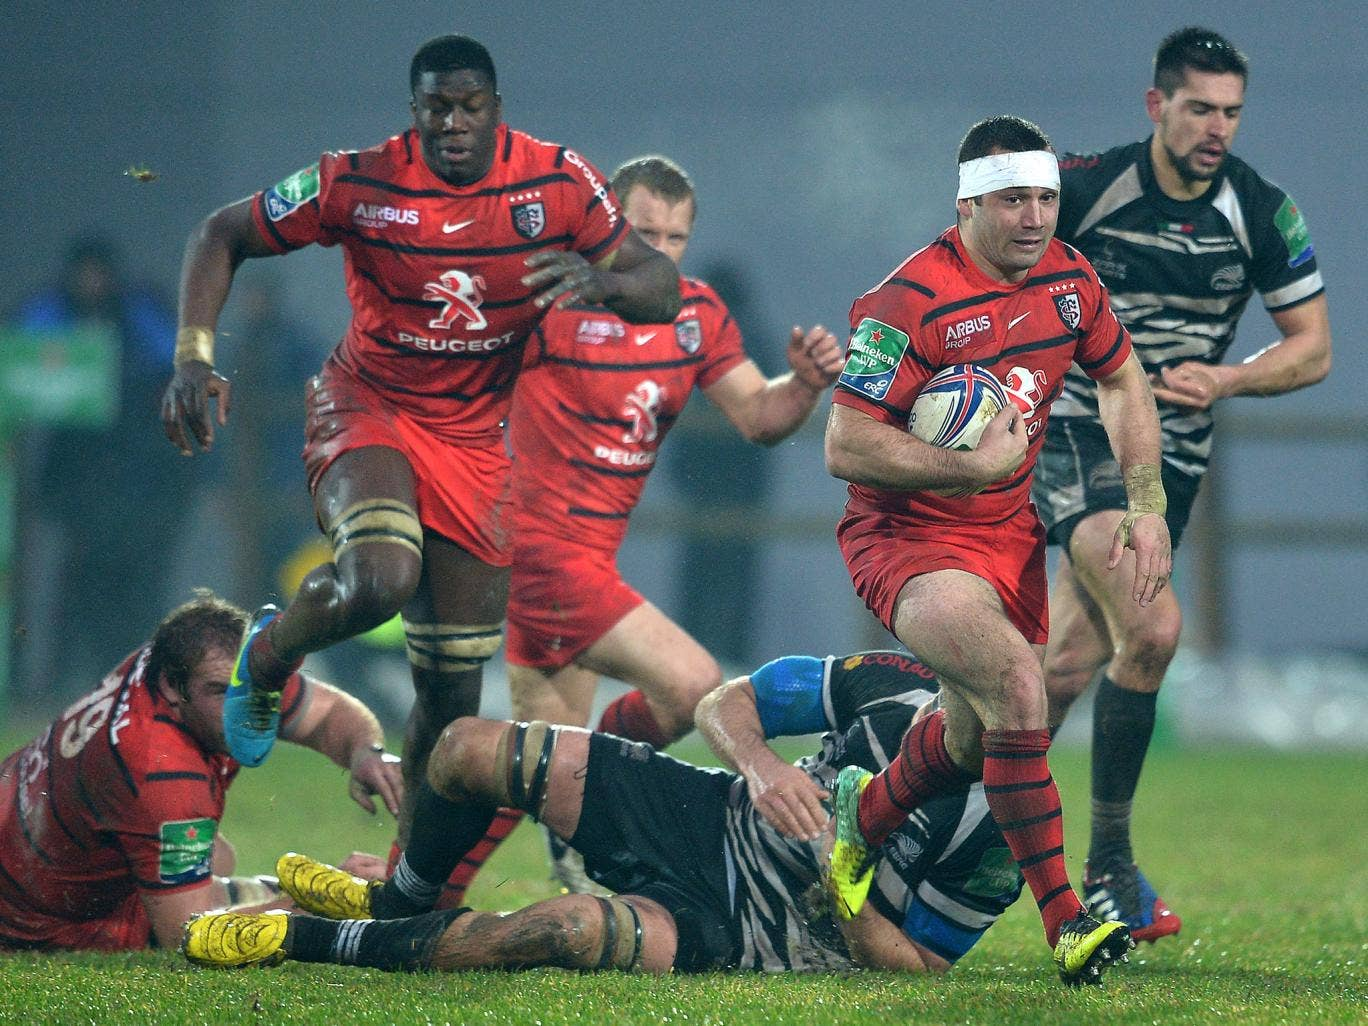 Toulouse beat Zebre 16-6 to move into the Heineken Cup quarter-finals